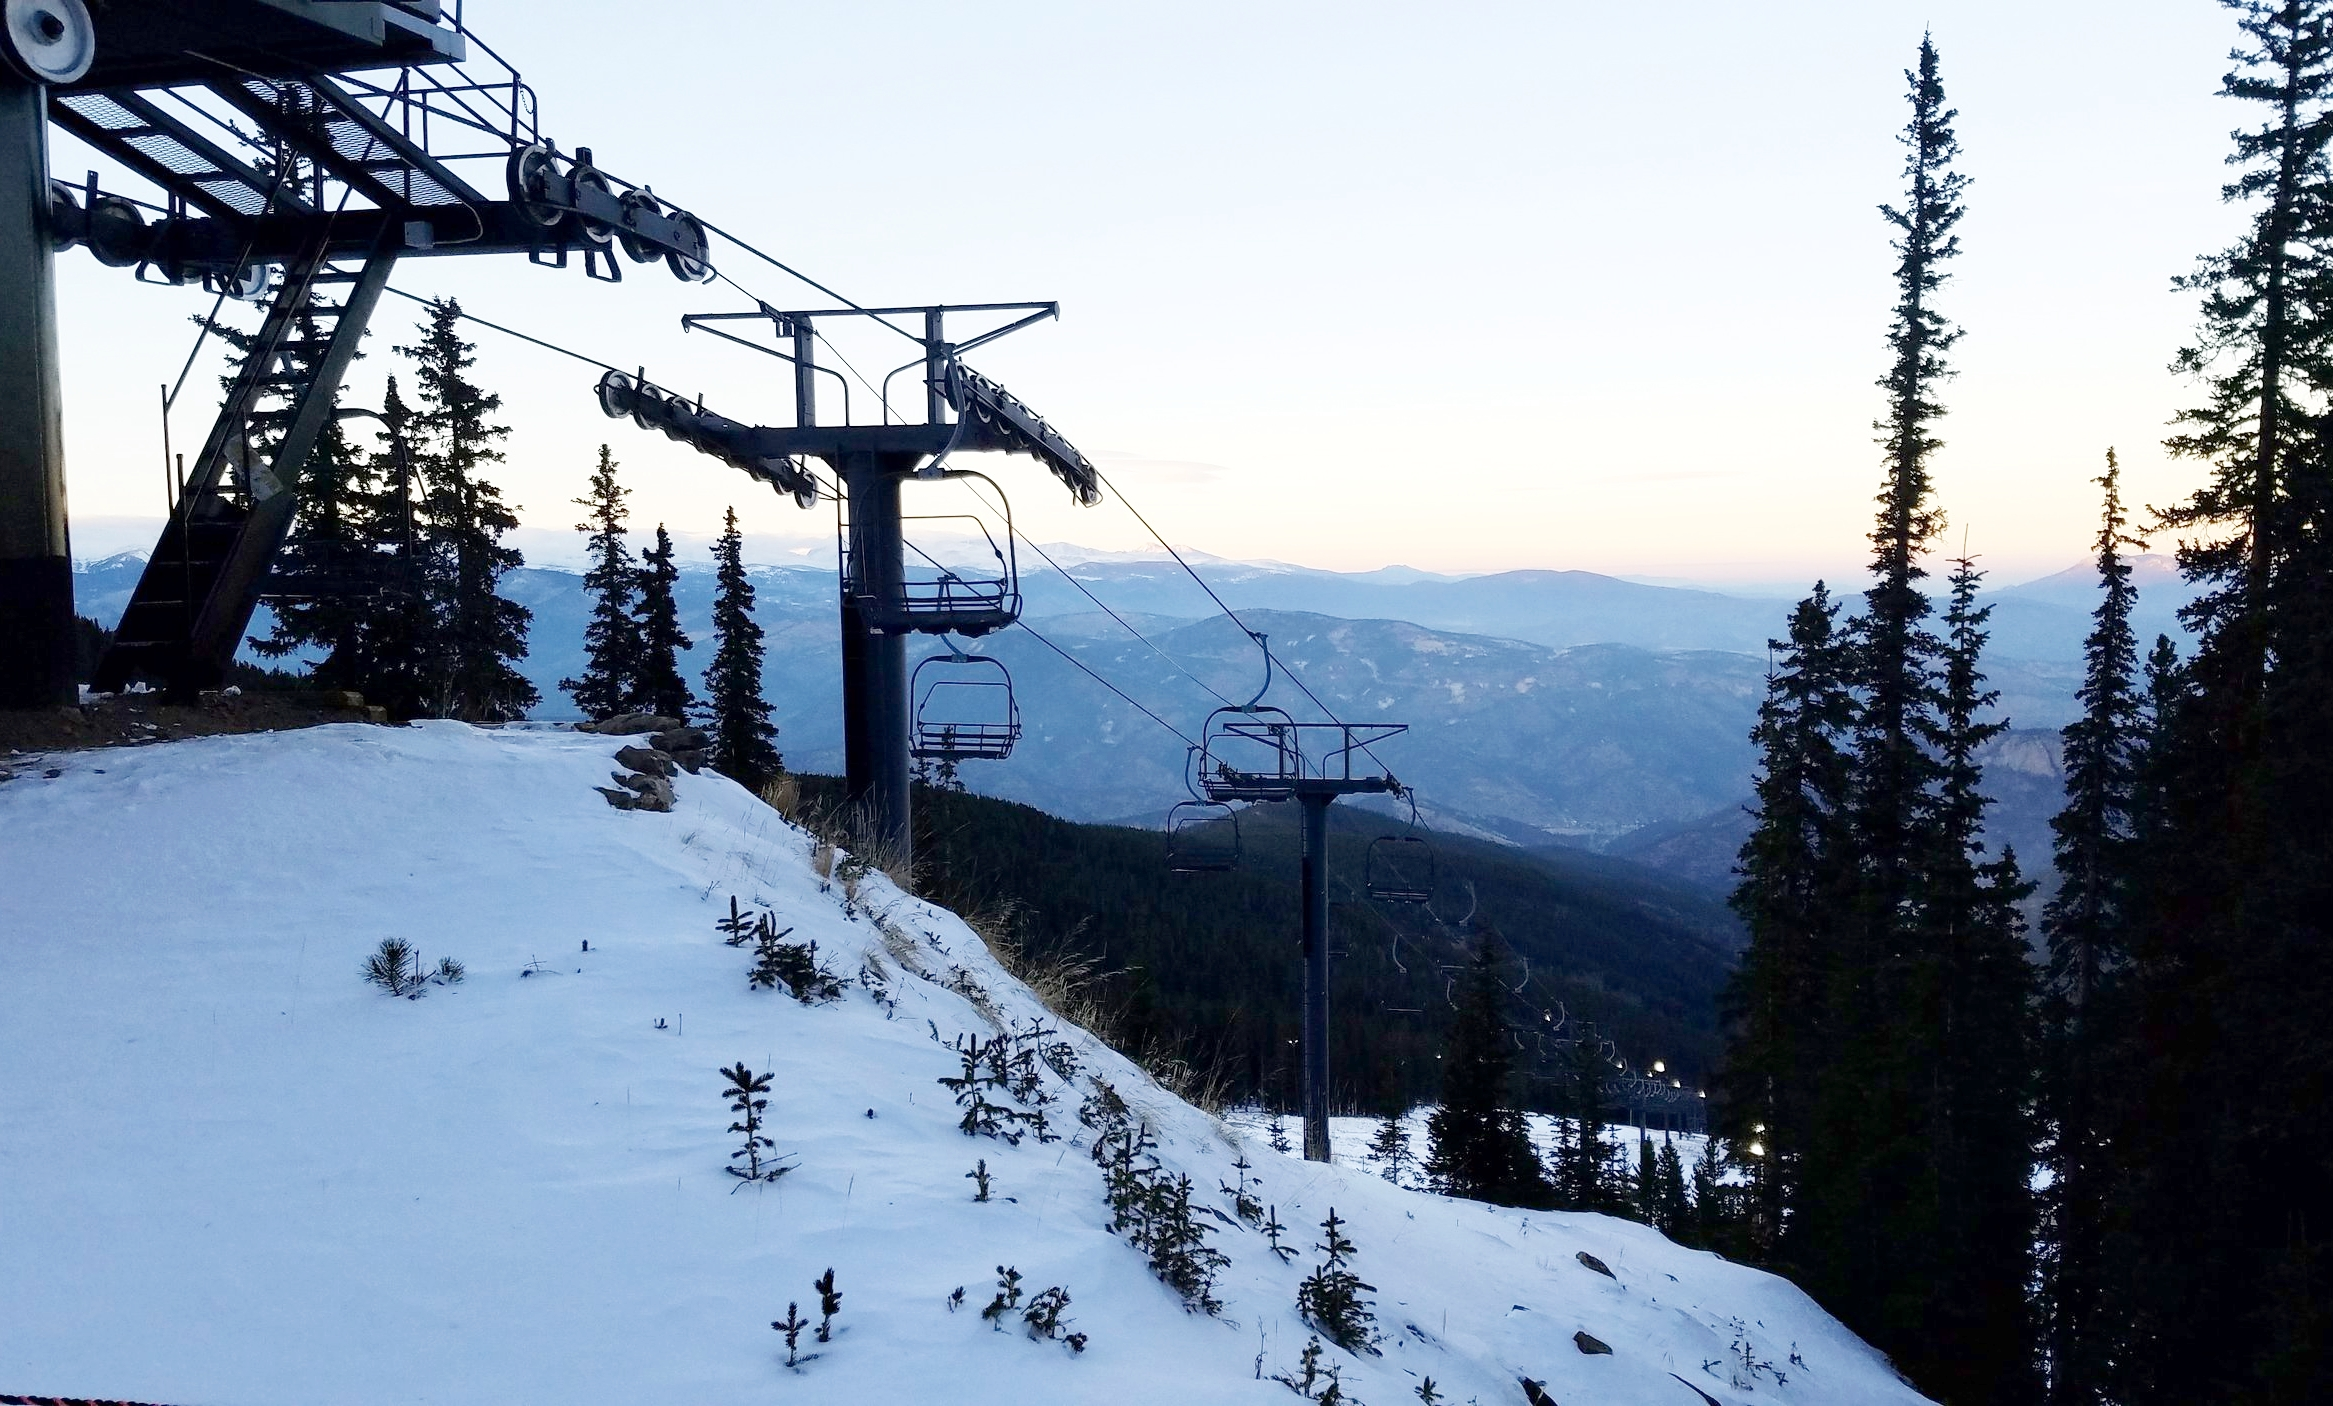 Early season skiing conditions didn't stop us from hitting the slopes in Idaho Springs, Colorado